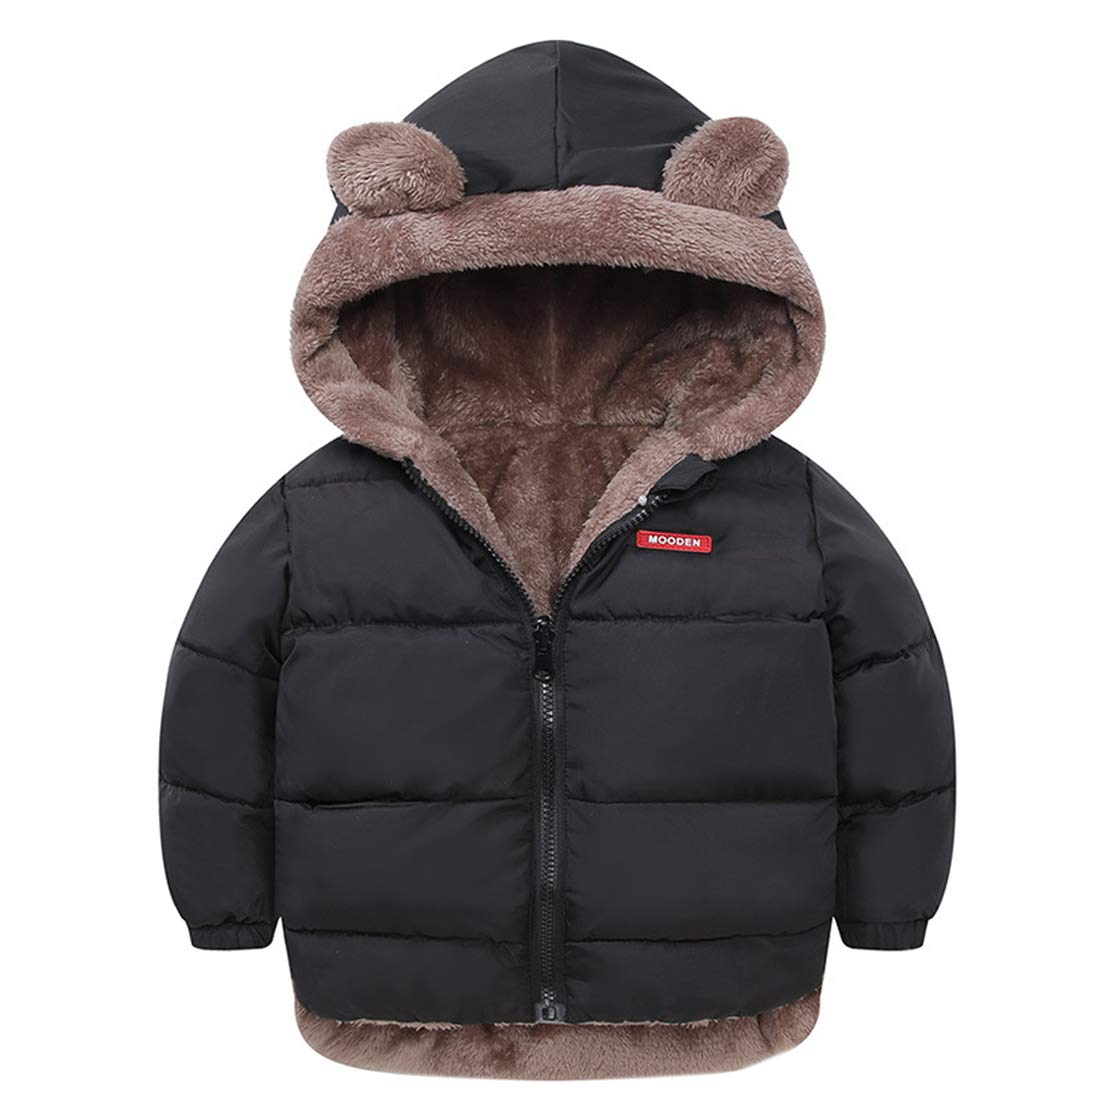 KELUOSI Warm Coat for 1-6 Years Old Kids Toddler Baby Boys Girls Thick Coat Padded Winter Jacket Clothes Outdoor